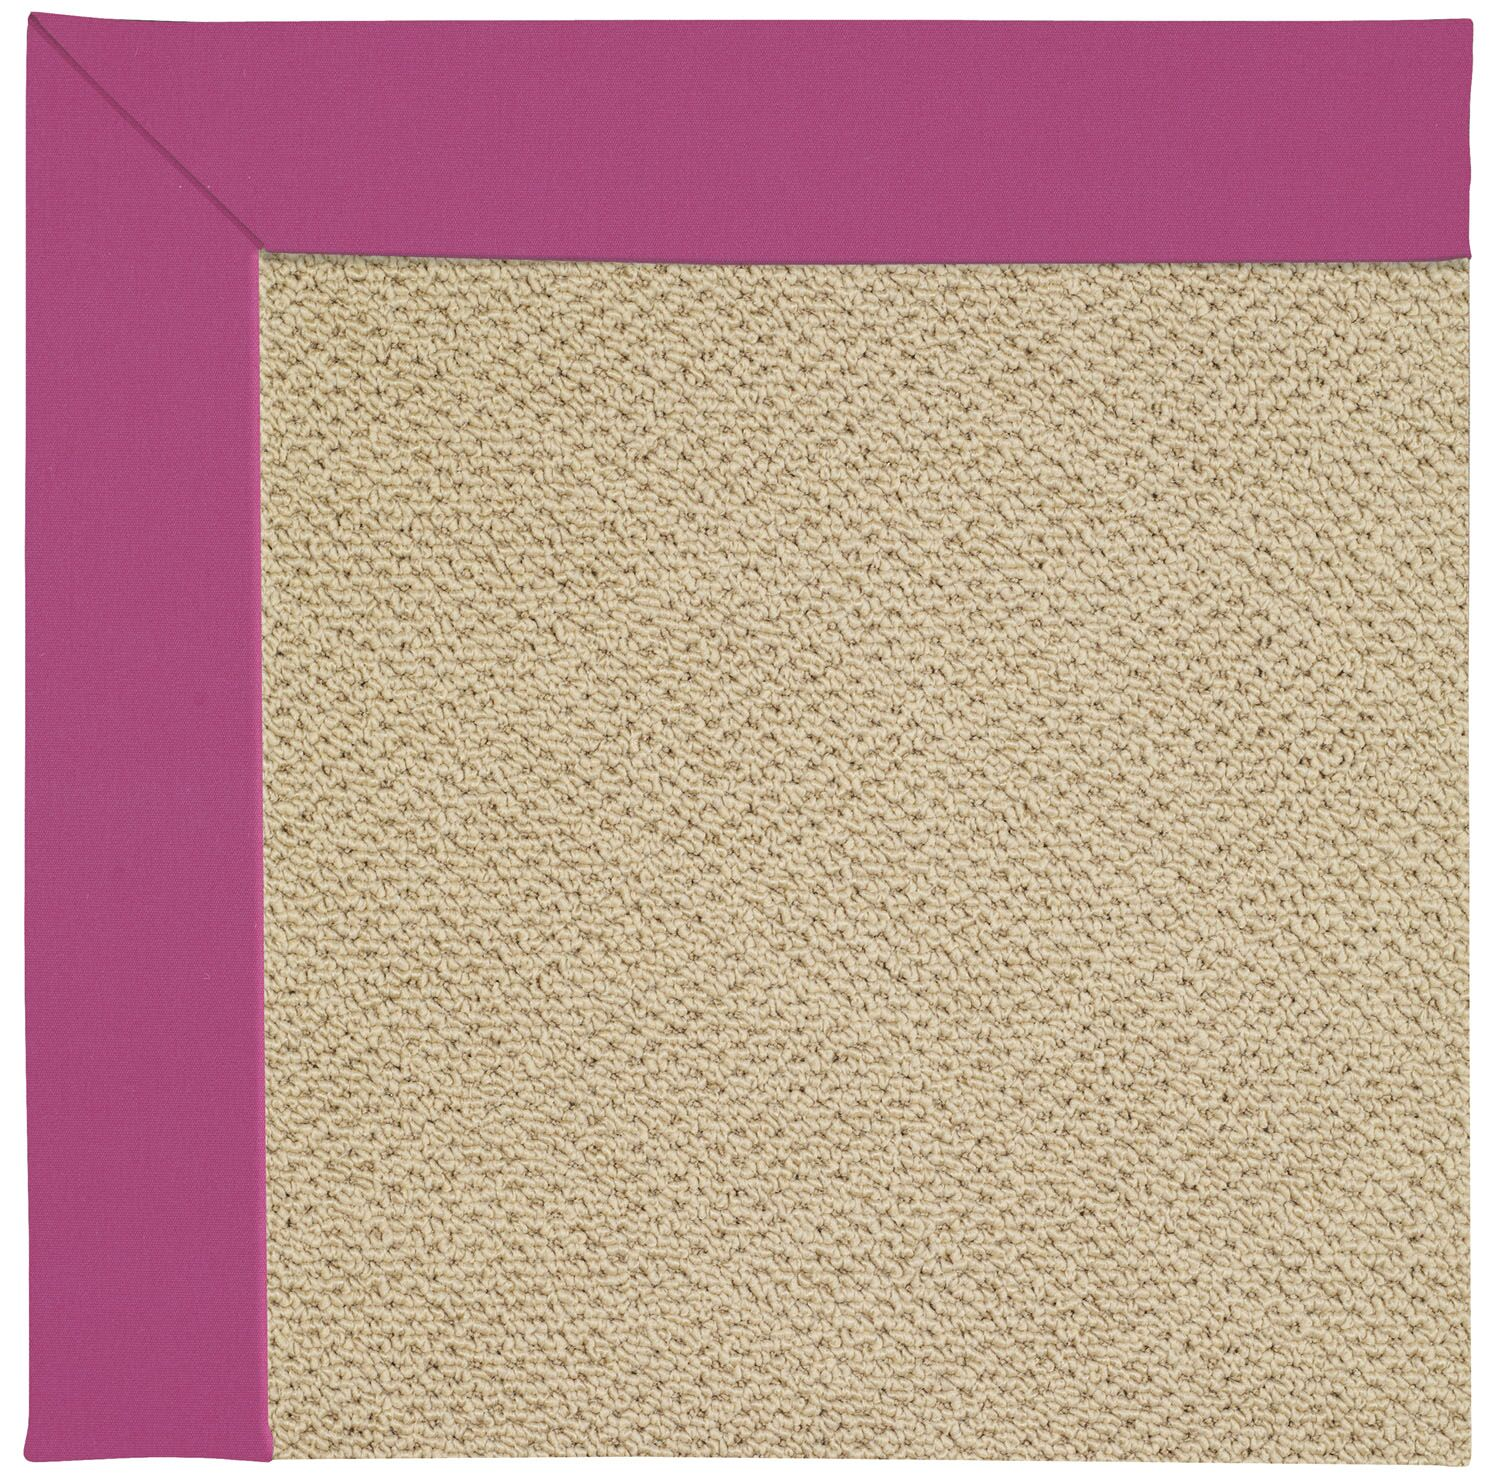 Lisle Machine Tufted Fuchsia/Beige Indoor/Outdoor Area Rug Rug Size: Square 4'